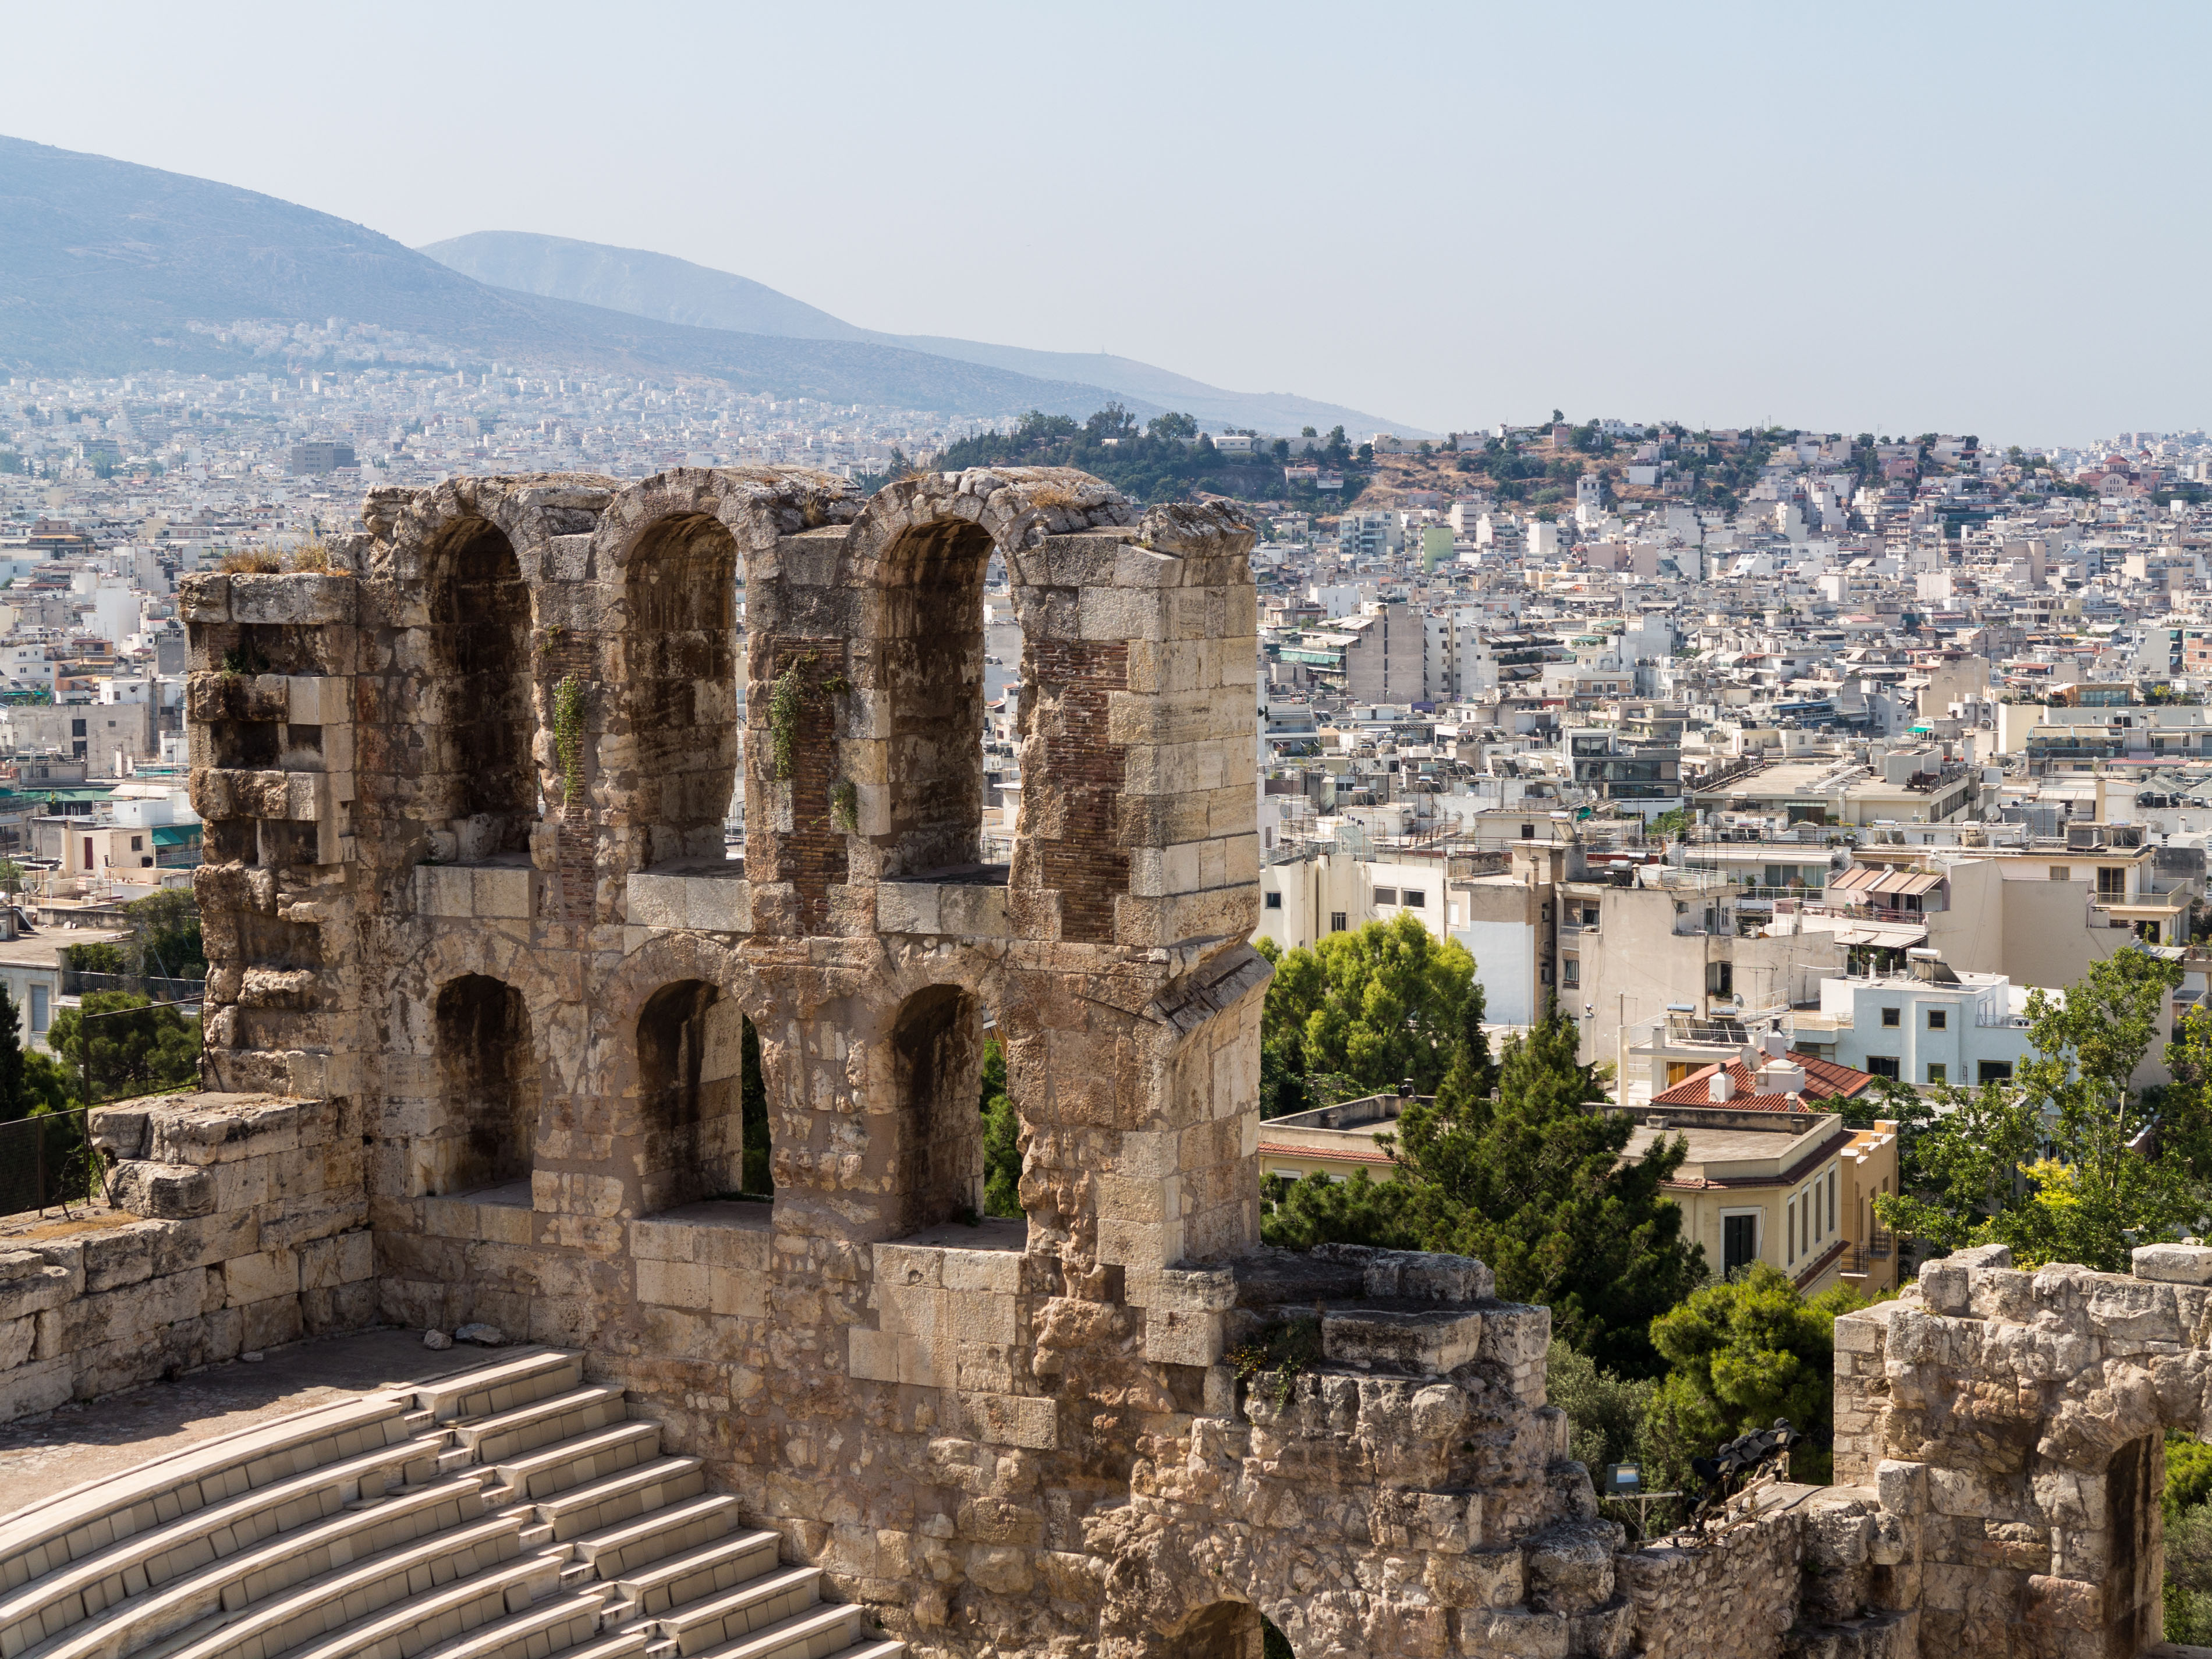 The Odeon of Herodes Atticus amphitheatre from the Acropolis, Athens - with the old ancient Greece city behind